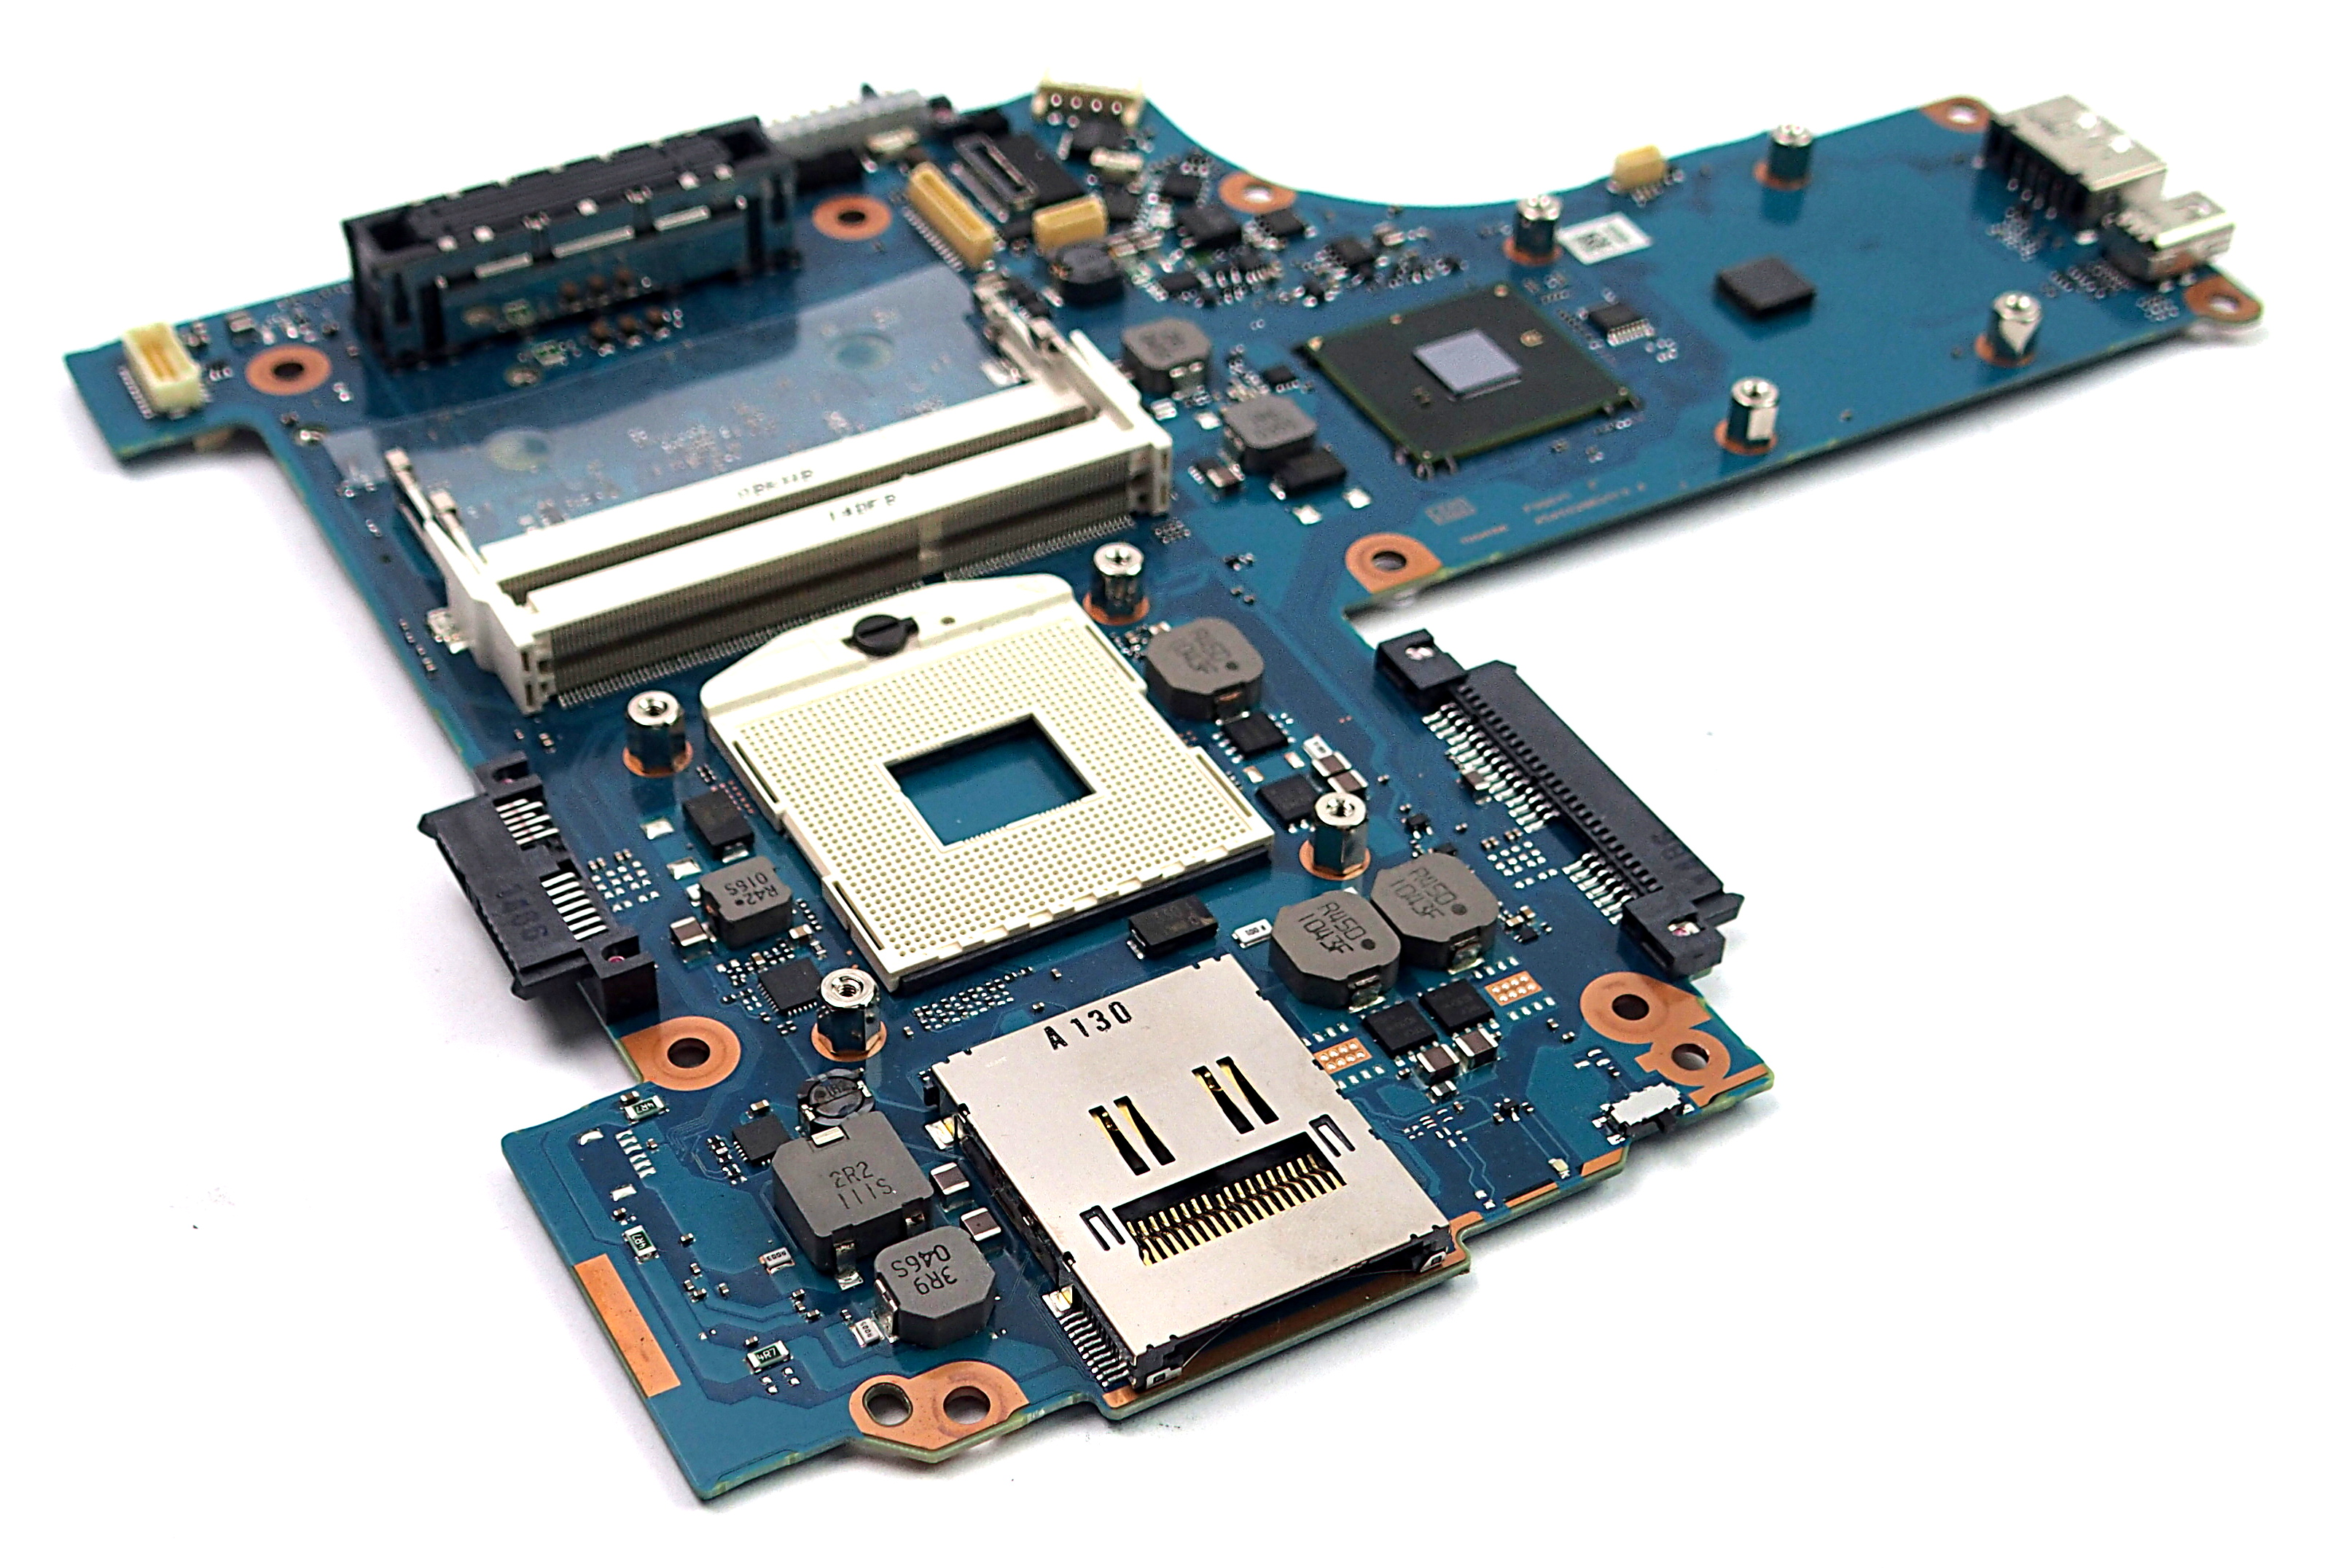 Toshiba A5A002862 Tecra M11 (M11-17V) Laptop Motherboard FGQSY1